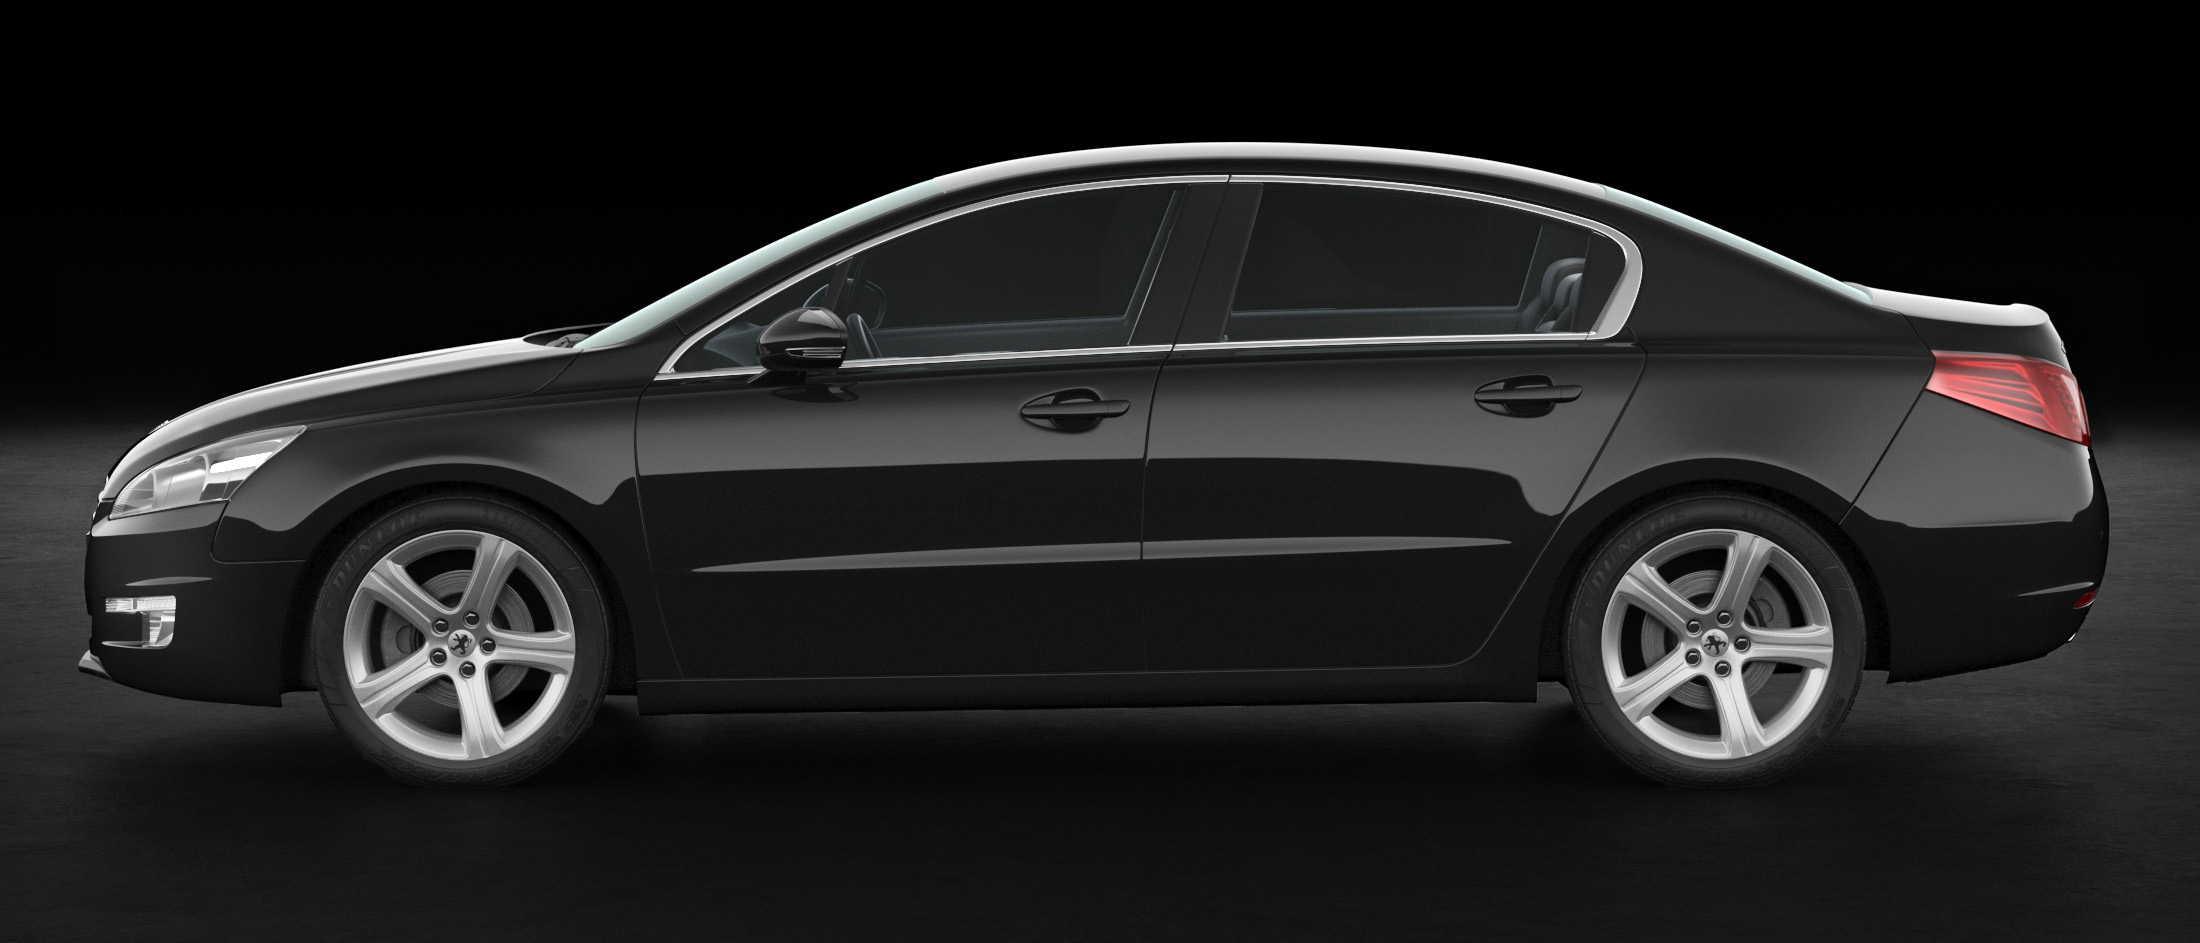 Peugeot 508 Black Background 3D Model